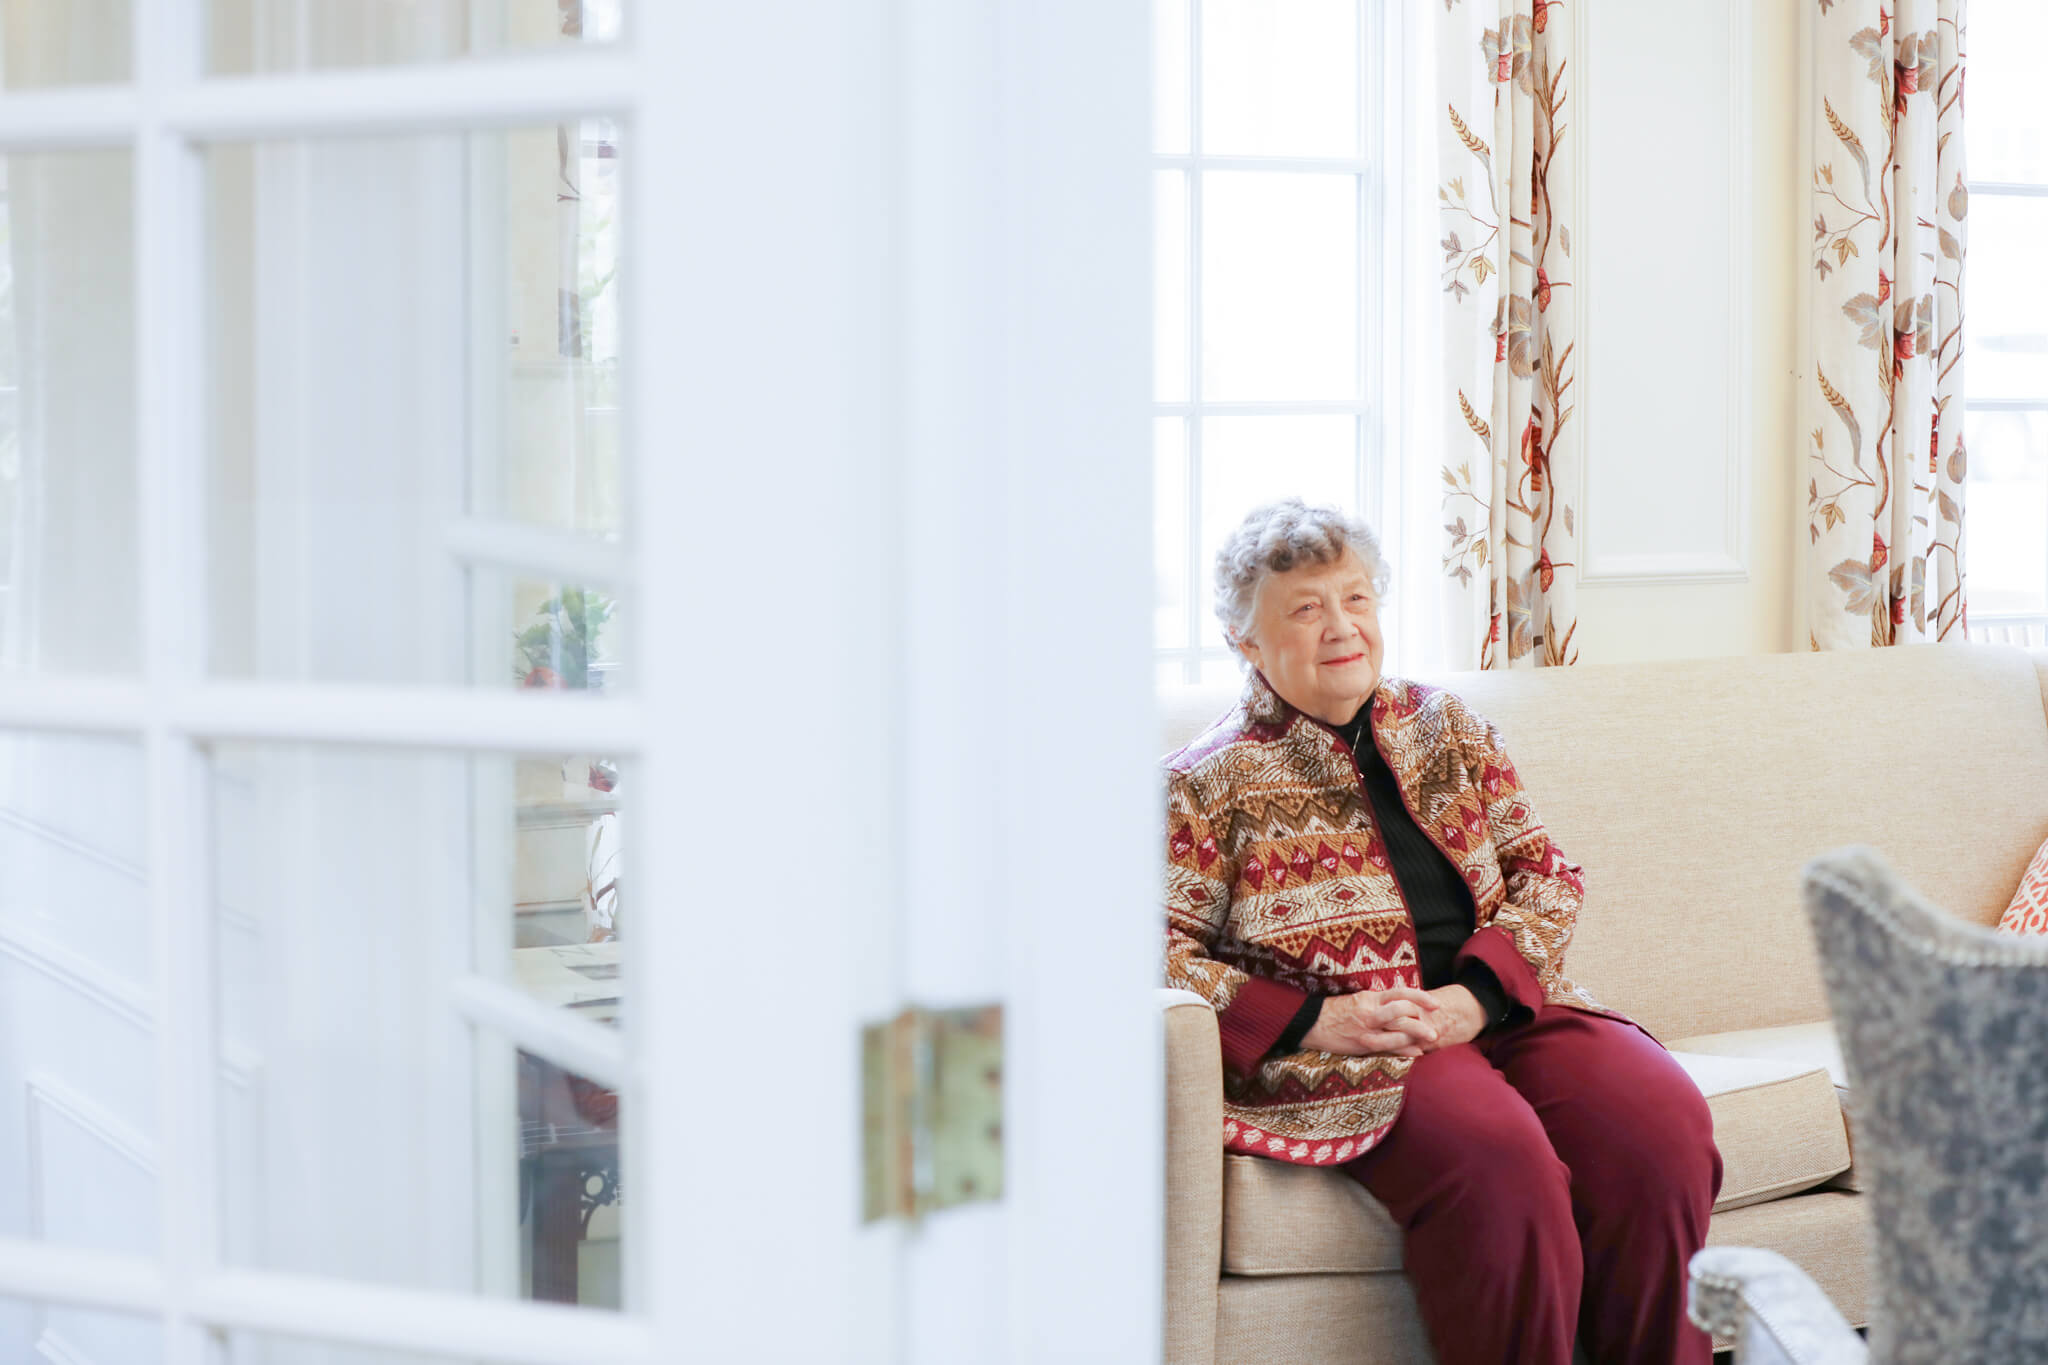 Lilian Warner Sitting on Couch in a Sunny Room